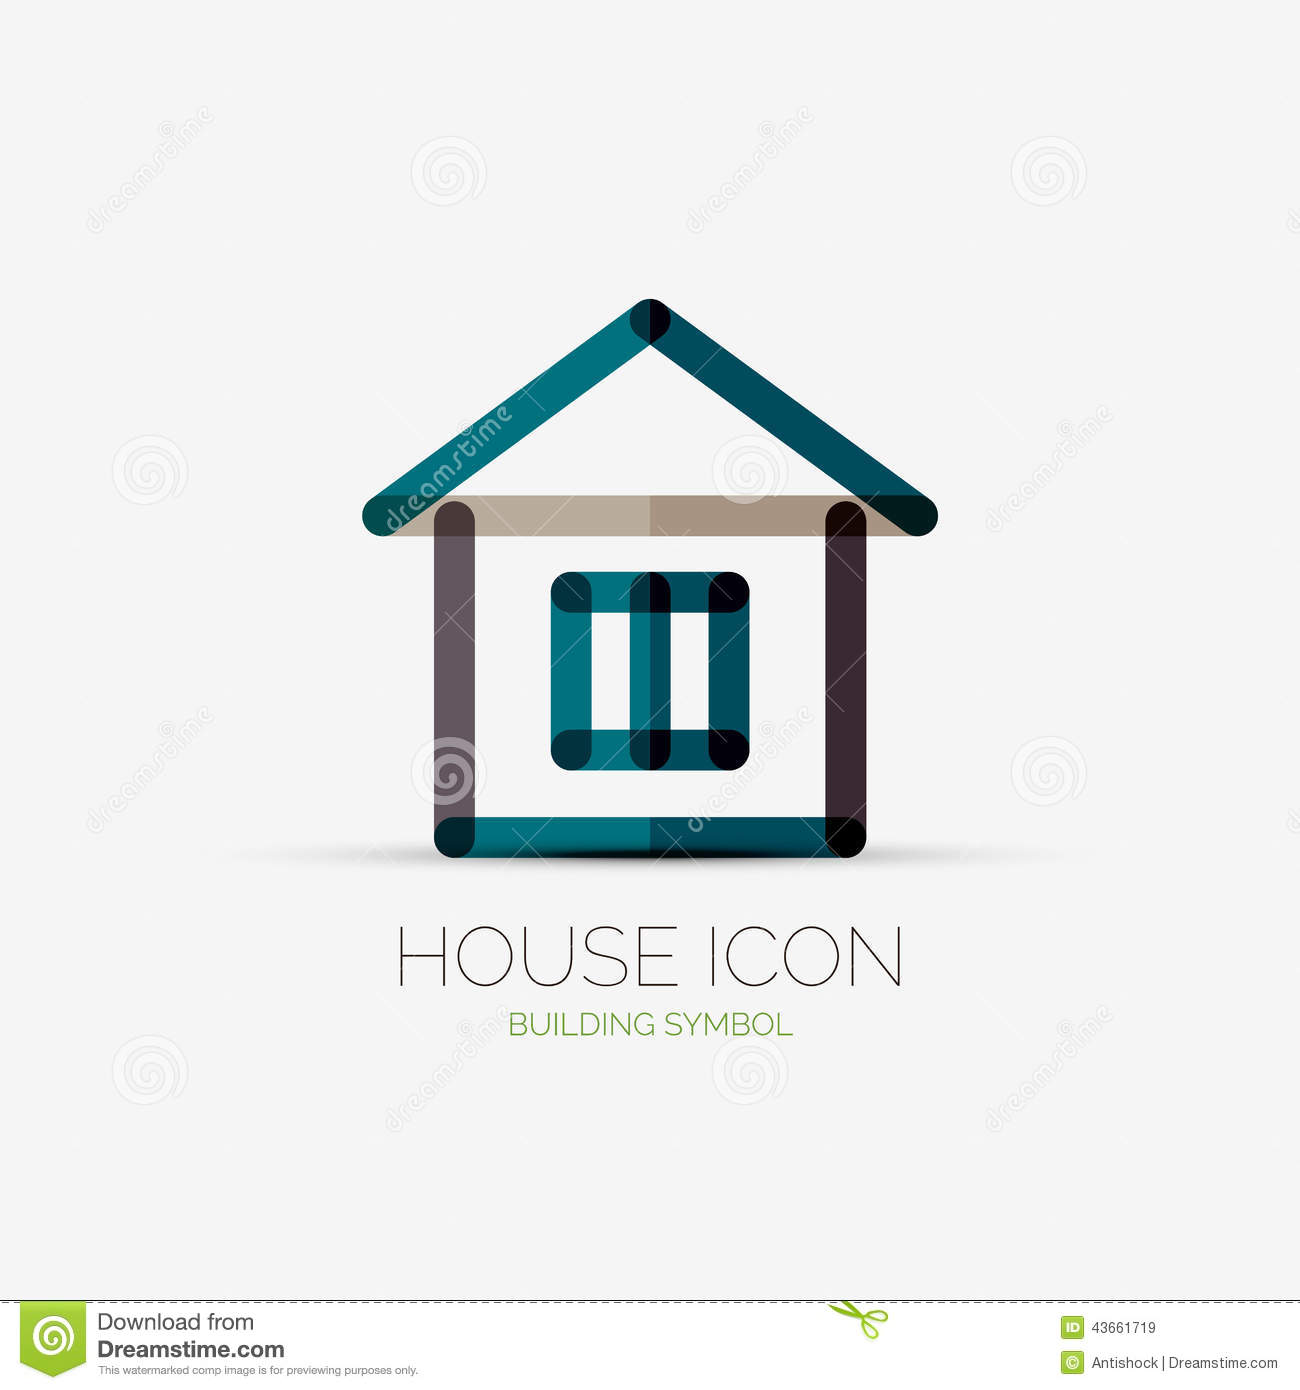 House icon company logo business concept for Household design company